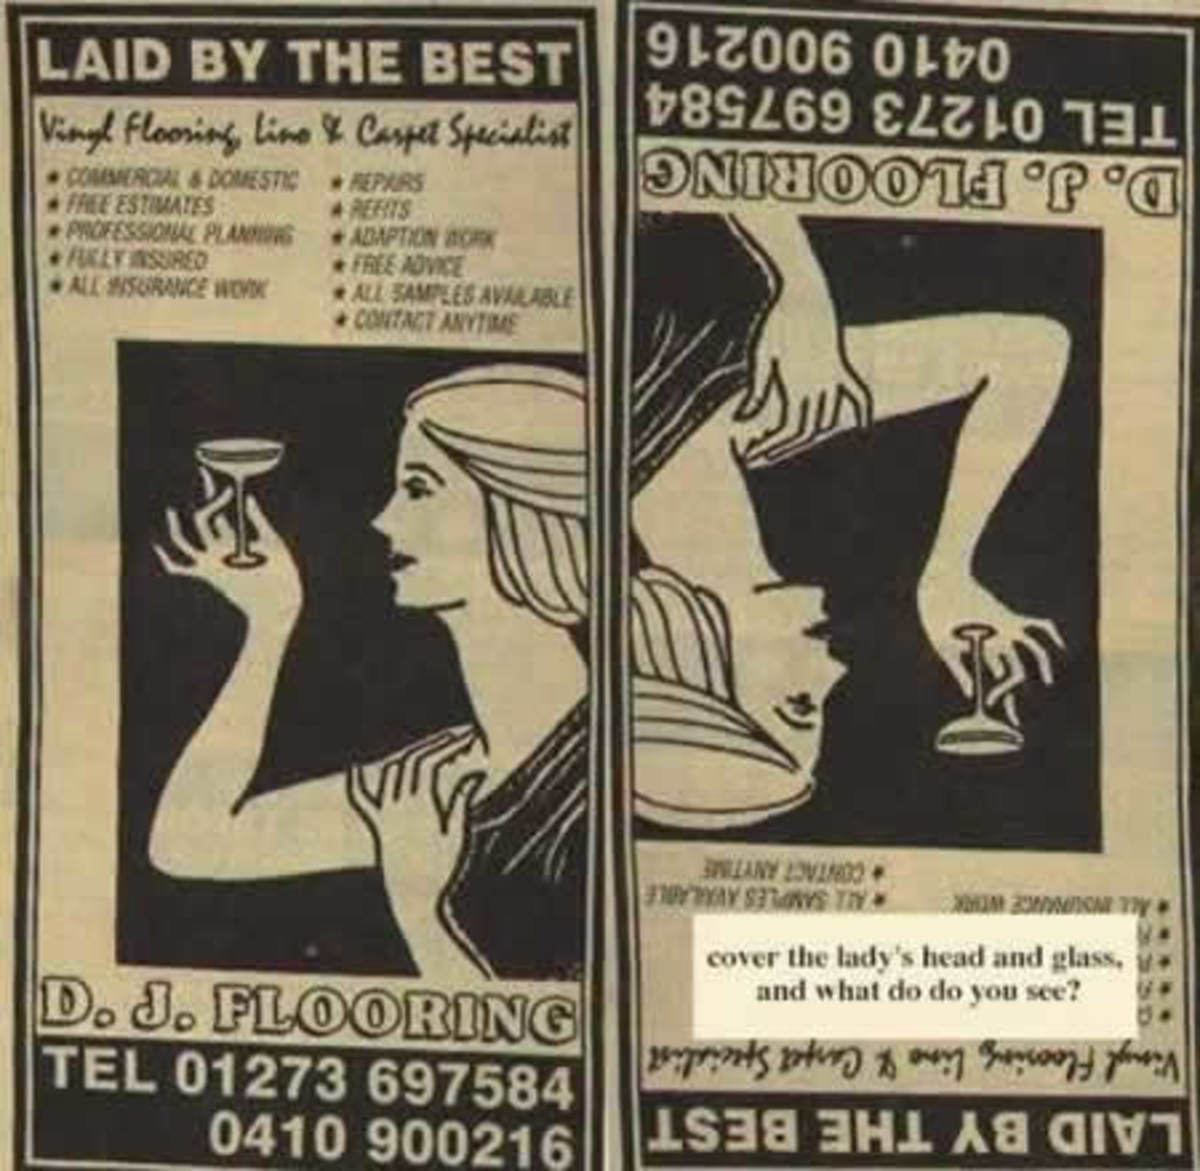 I want to be laid by the best!  (note, cover the woman's head and her glass in the second picture and see what image you get!)